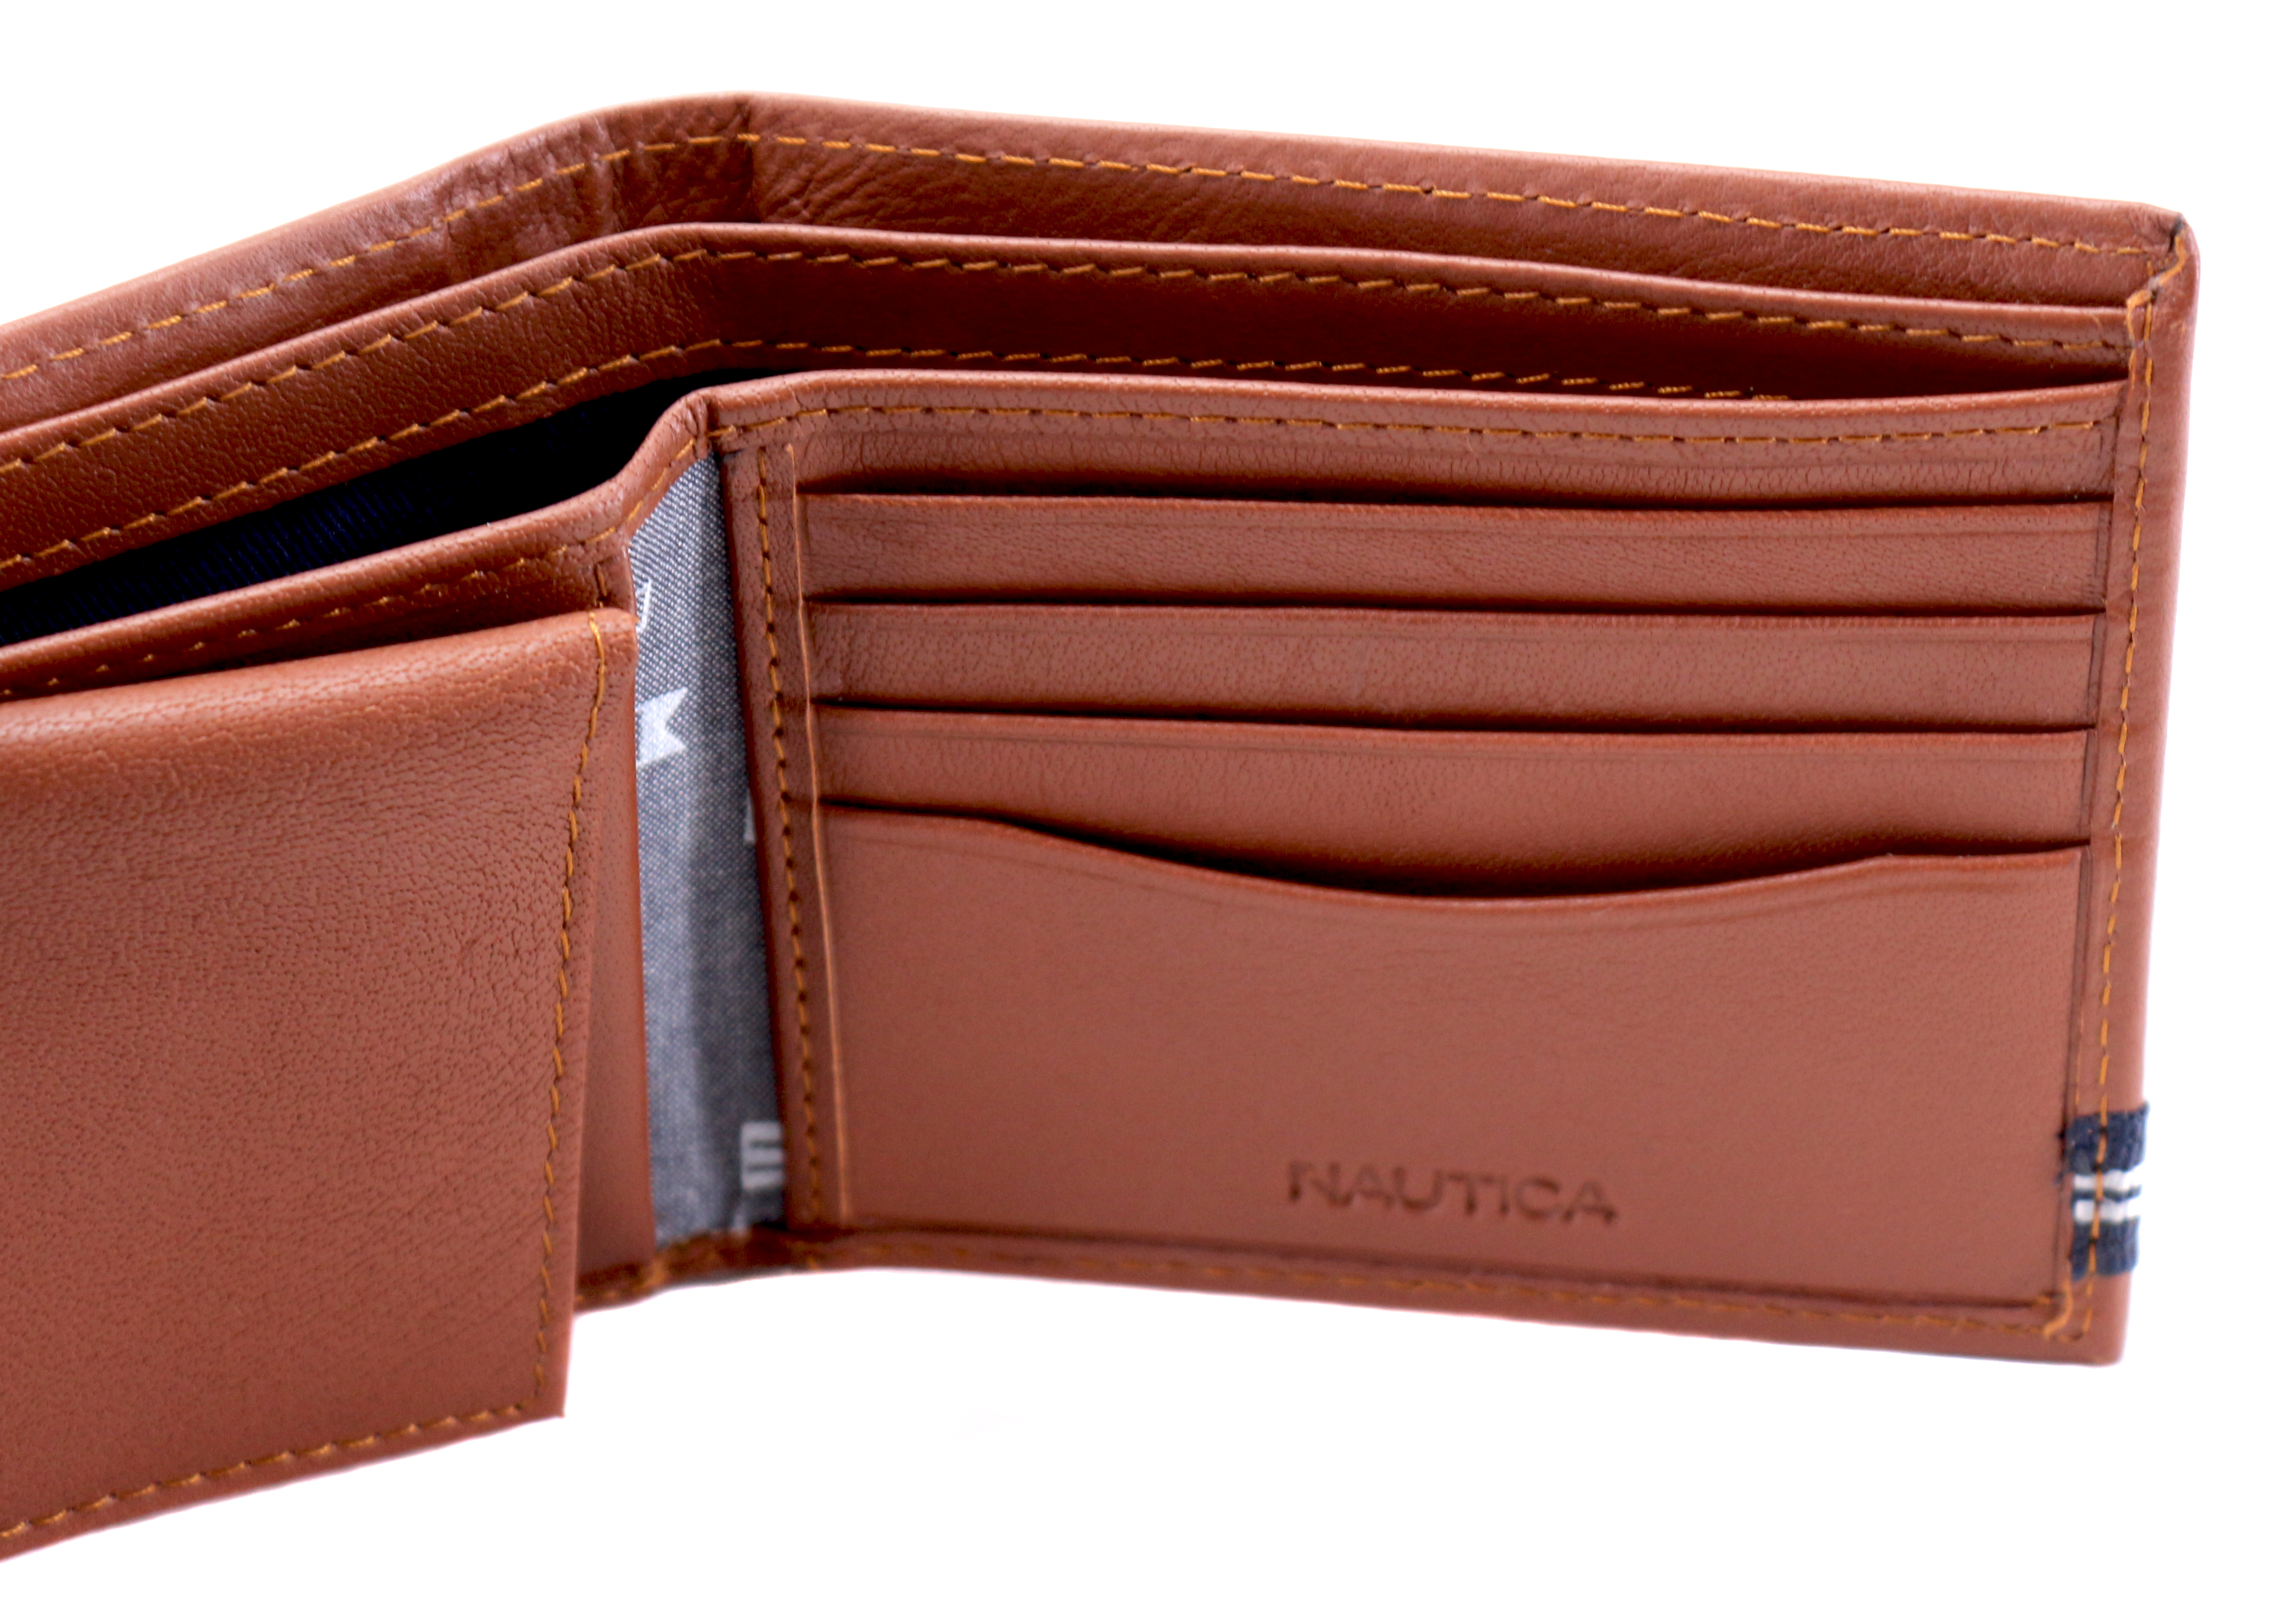 Nautica-Men-039-s-Genuine-Leather-Credit-Card-ID-Double-Billfold-Passcase-Wallet thumbnail 28